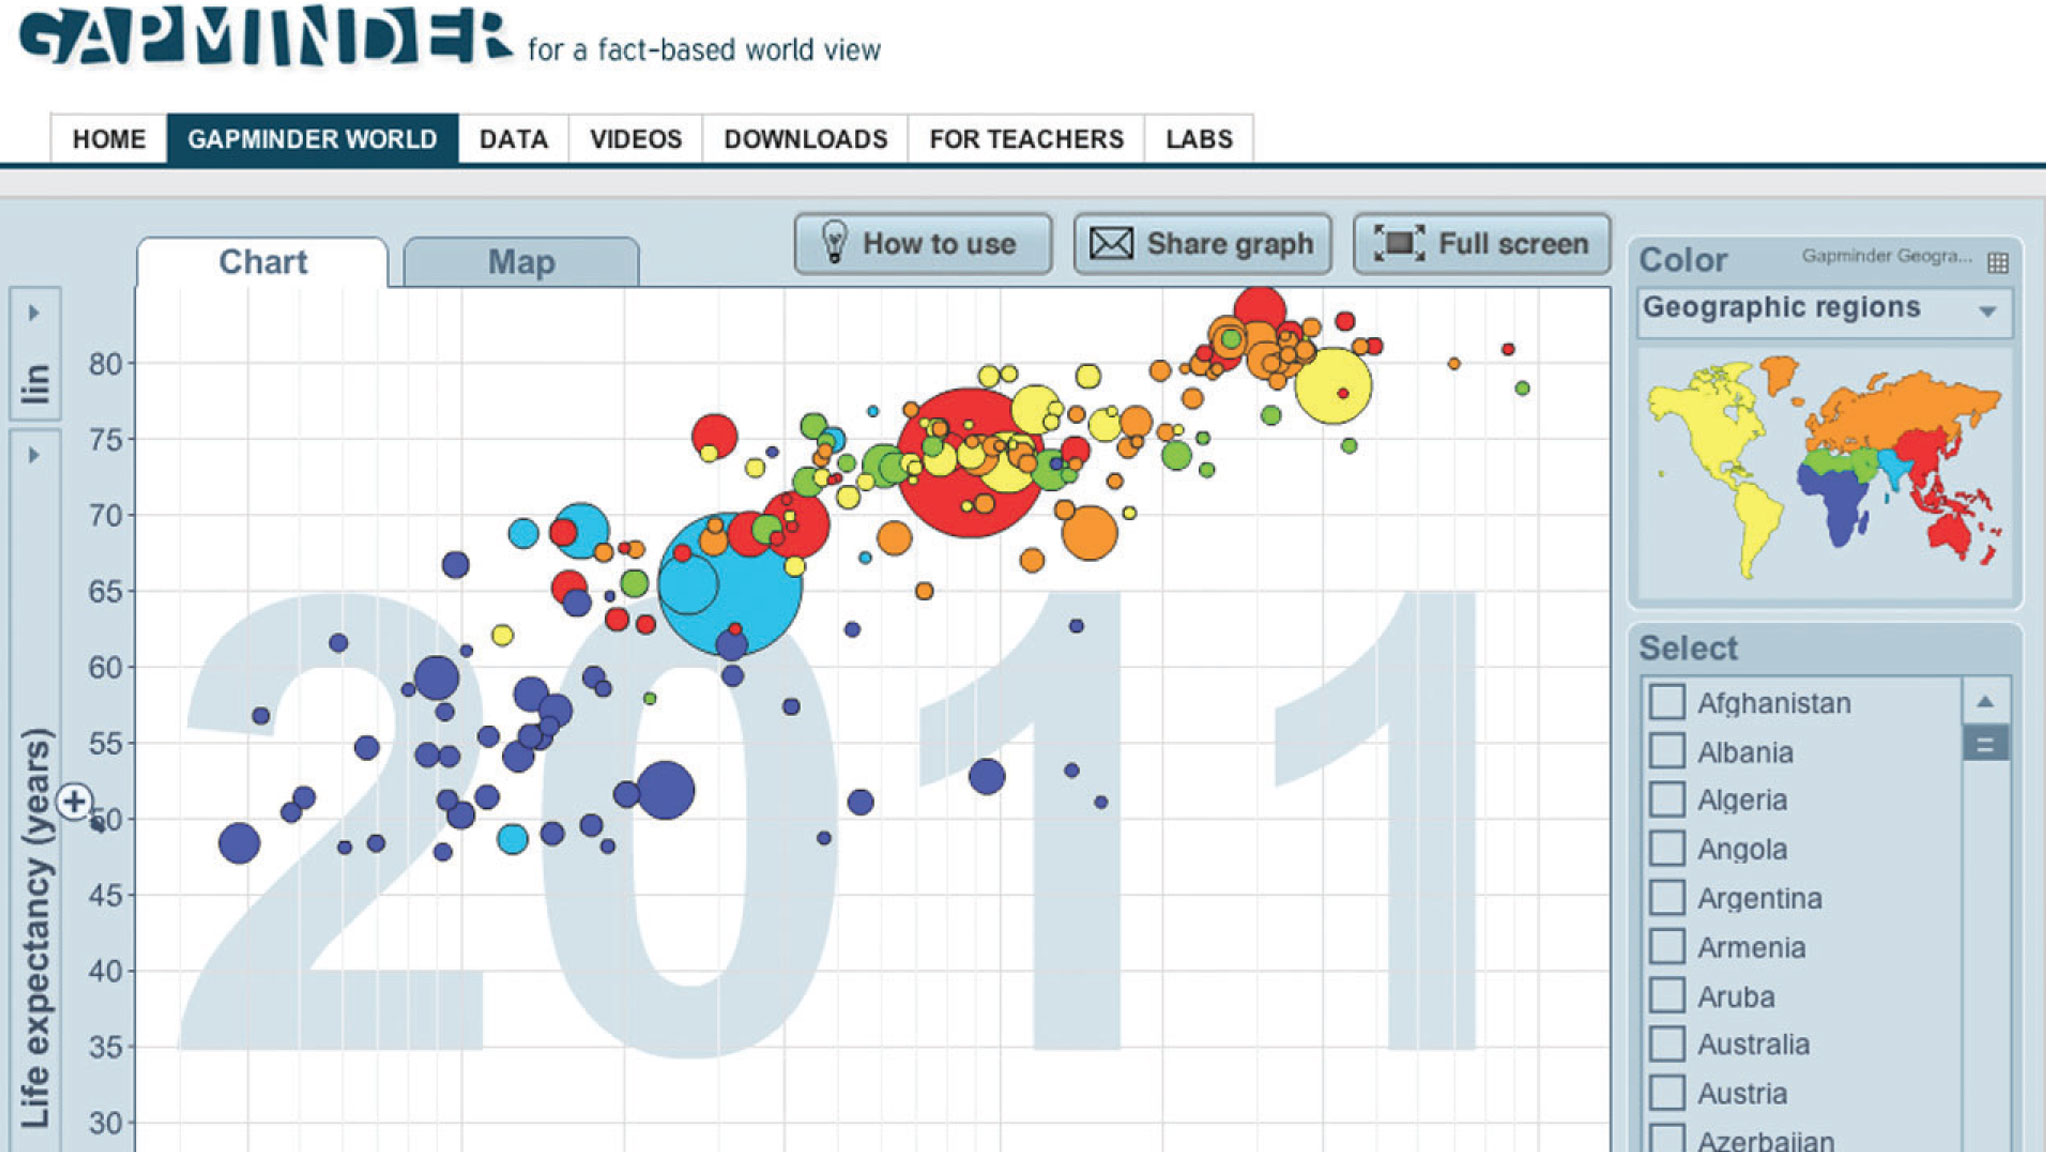 gapminder unveiling the beauty of statistics for a fact